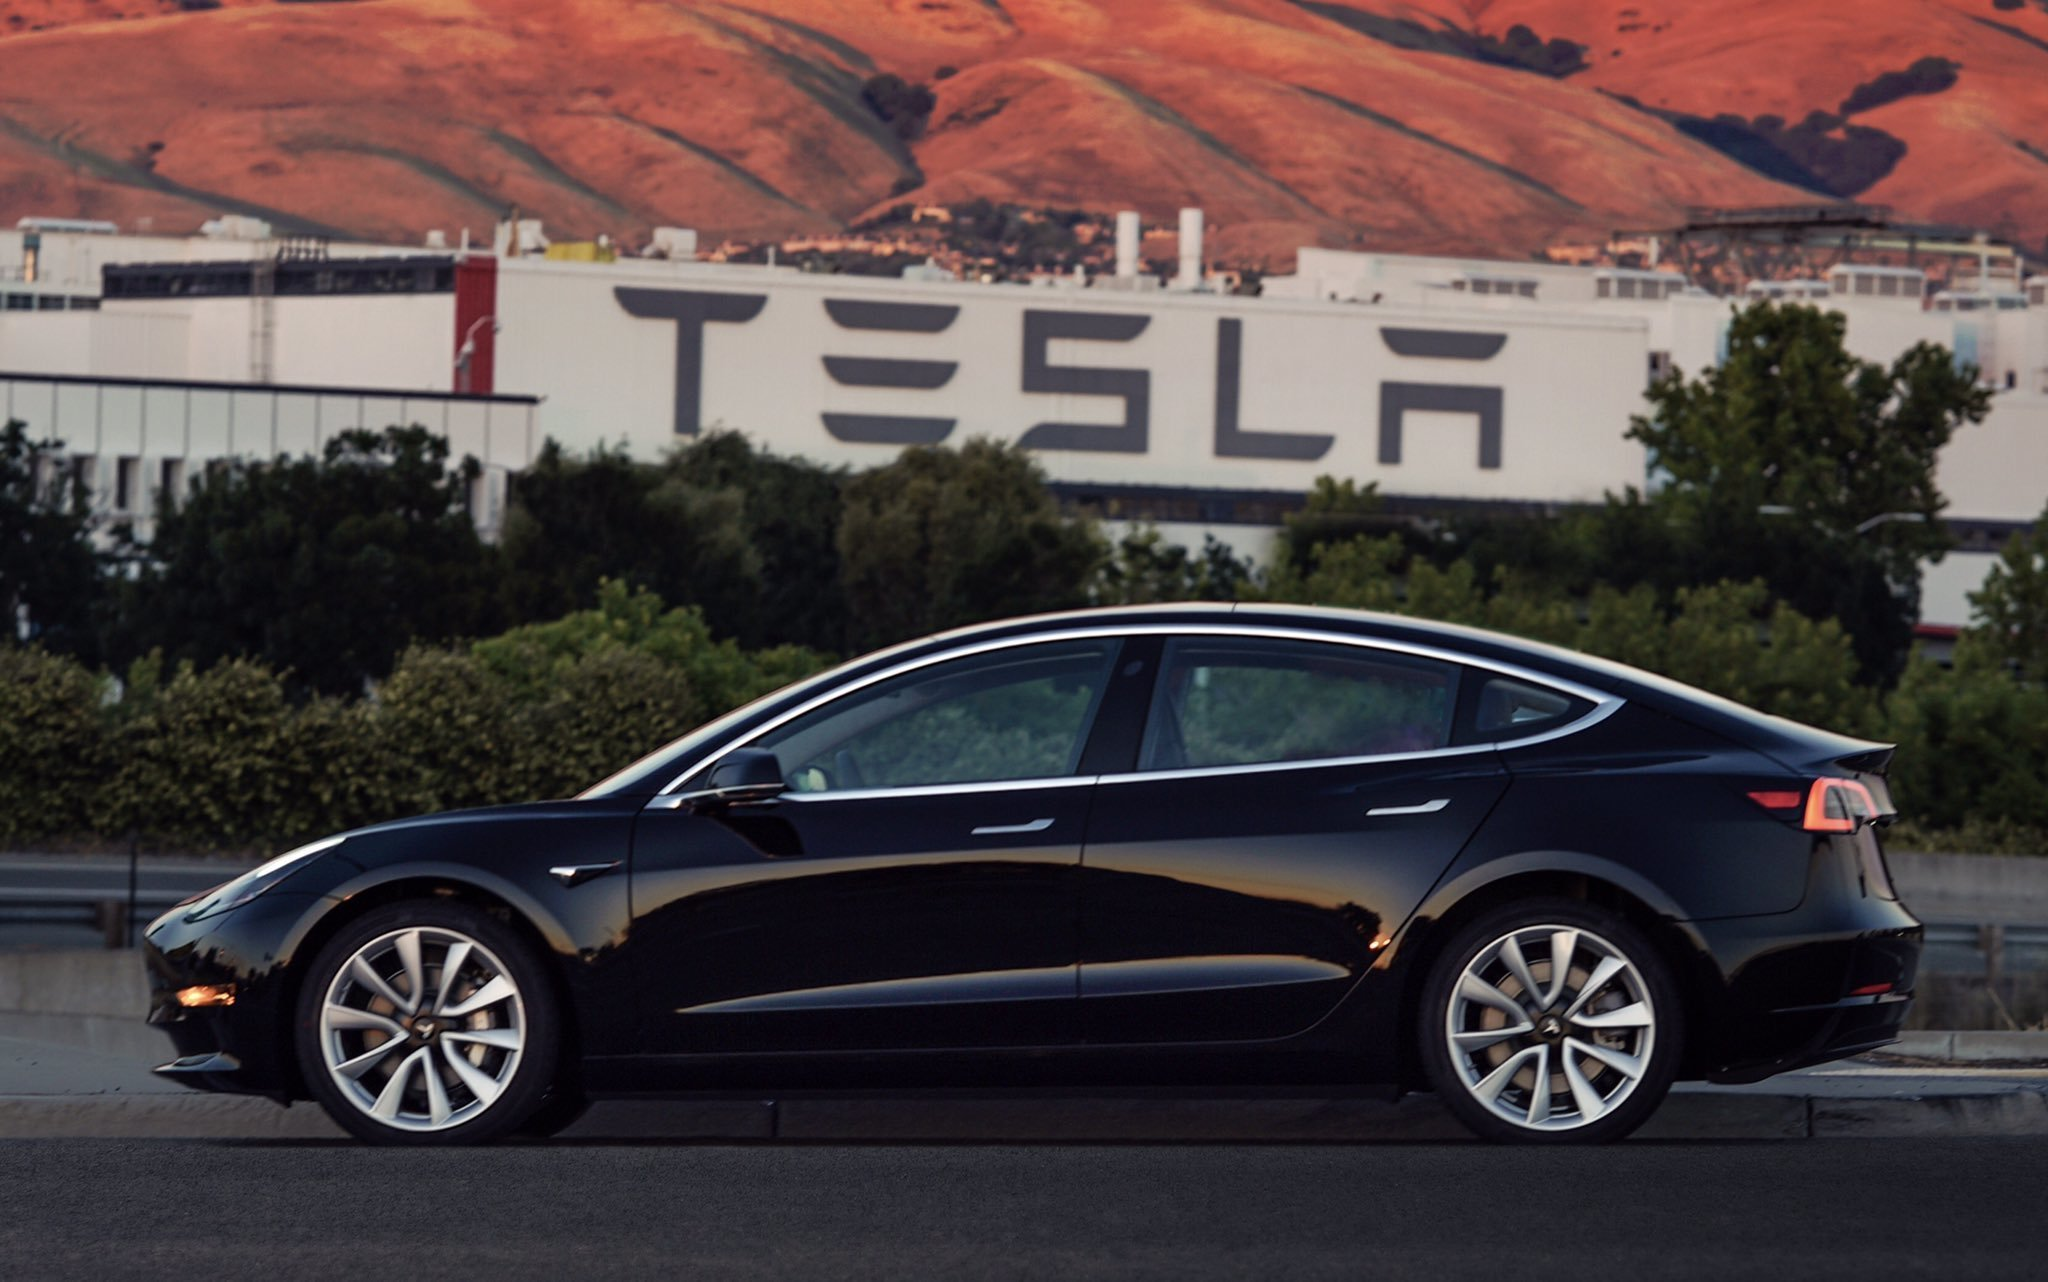 Elon Musk Admits the First Production Tesla Model 3 is Going